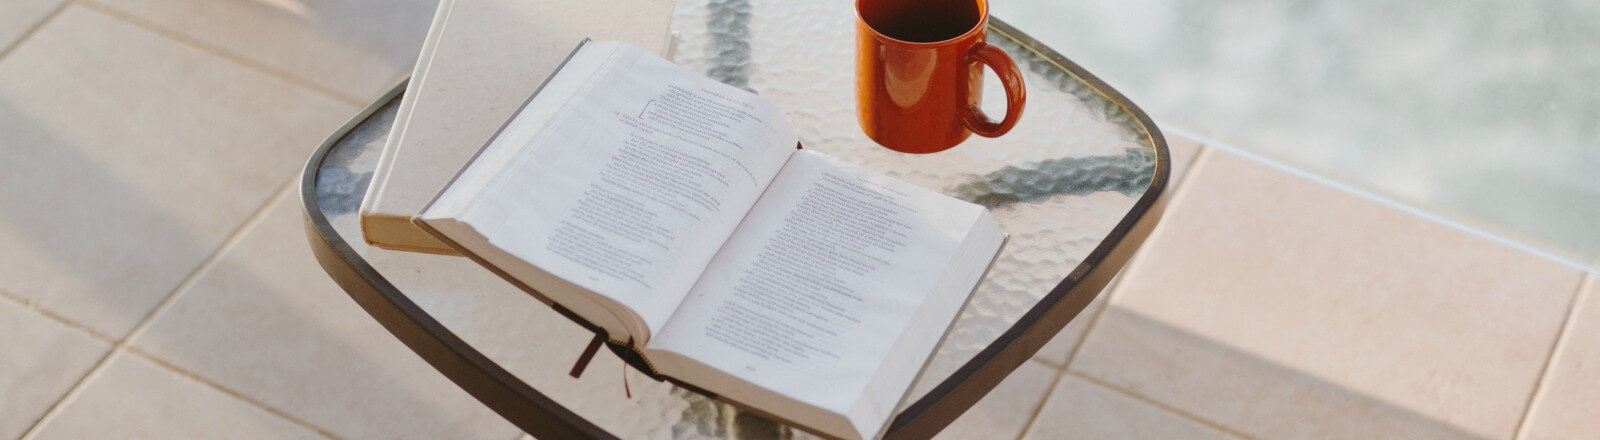 The 9 must-read business books of 2018